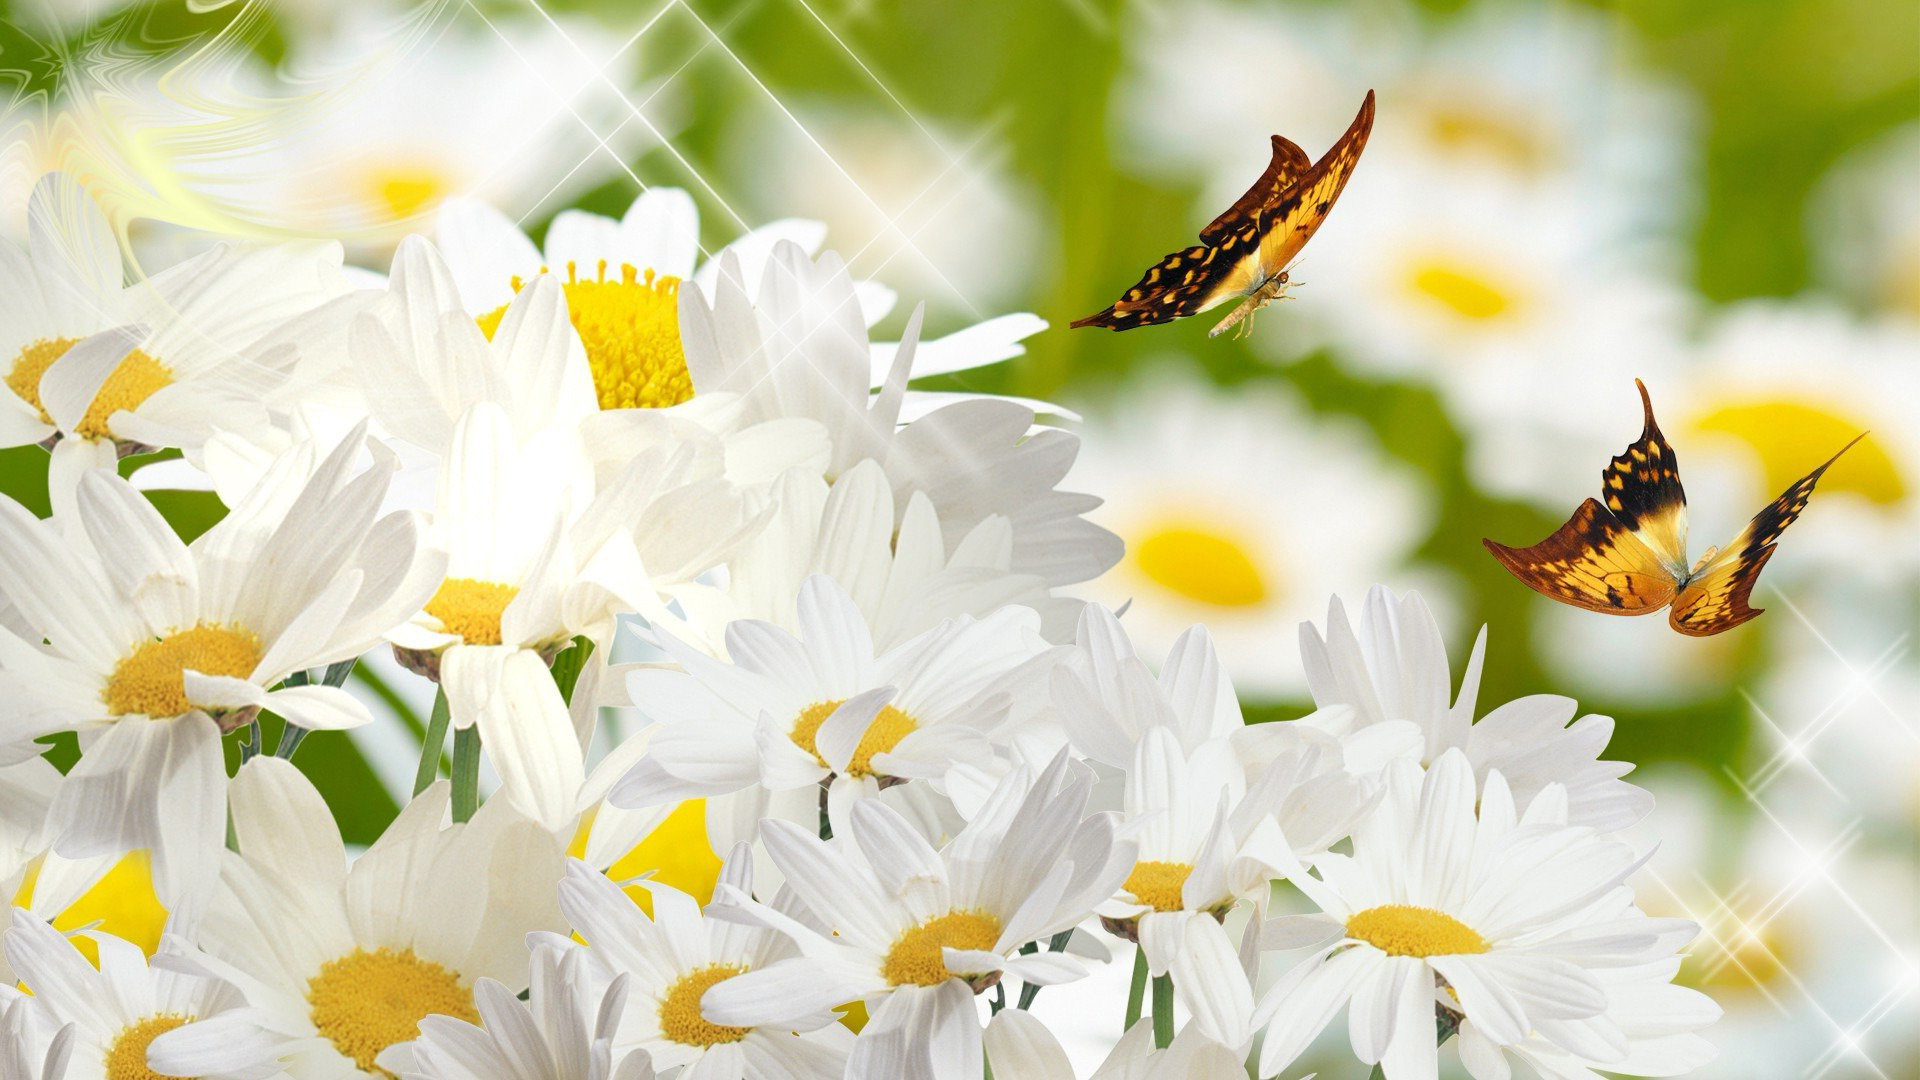 Free Cool Flower High Quality Wallpaper Id - Daisy And Butterfly , HD Wallpaper & Backgrounds